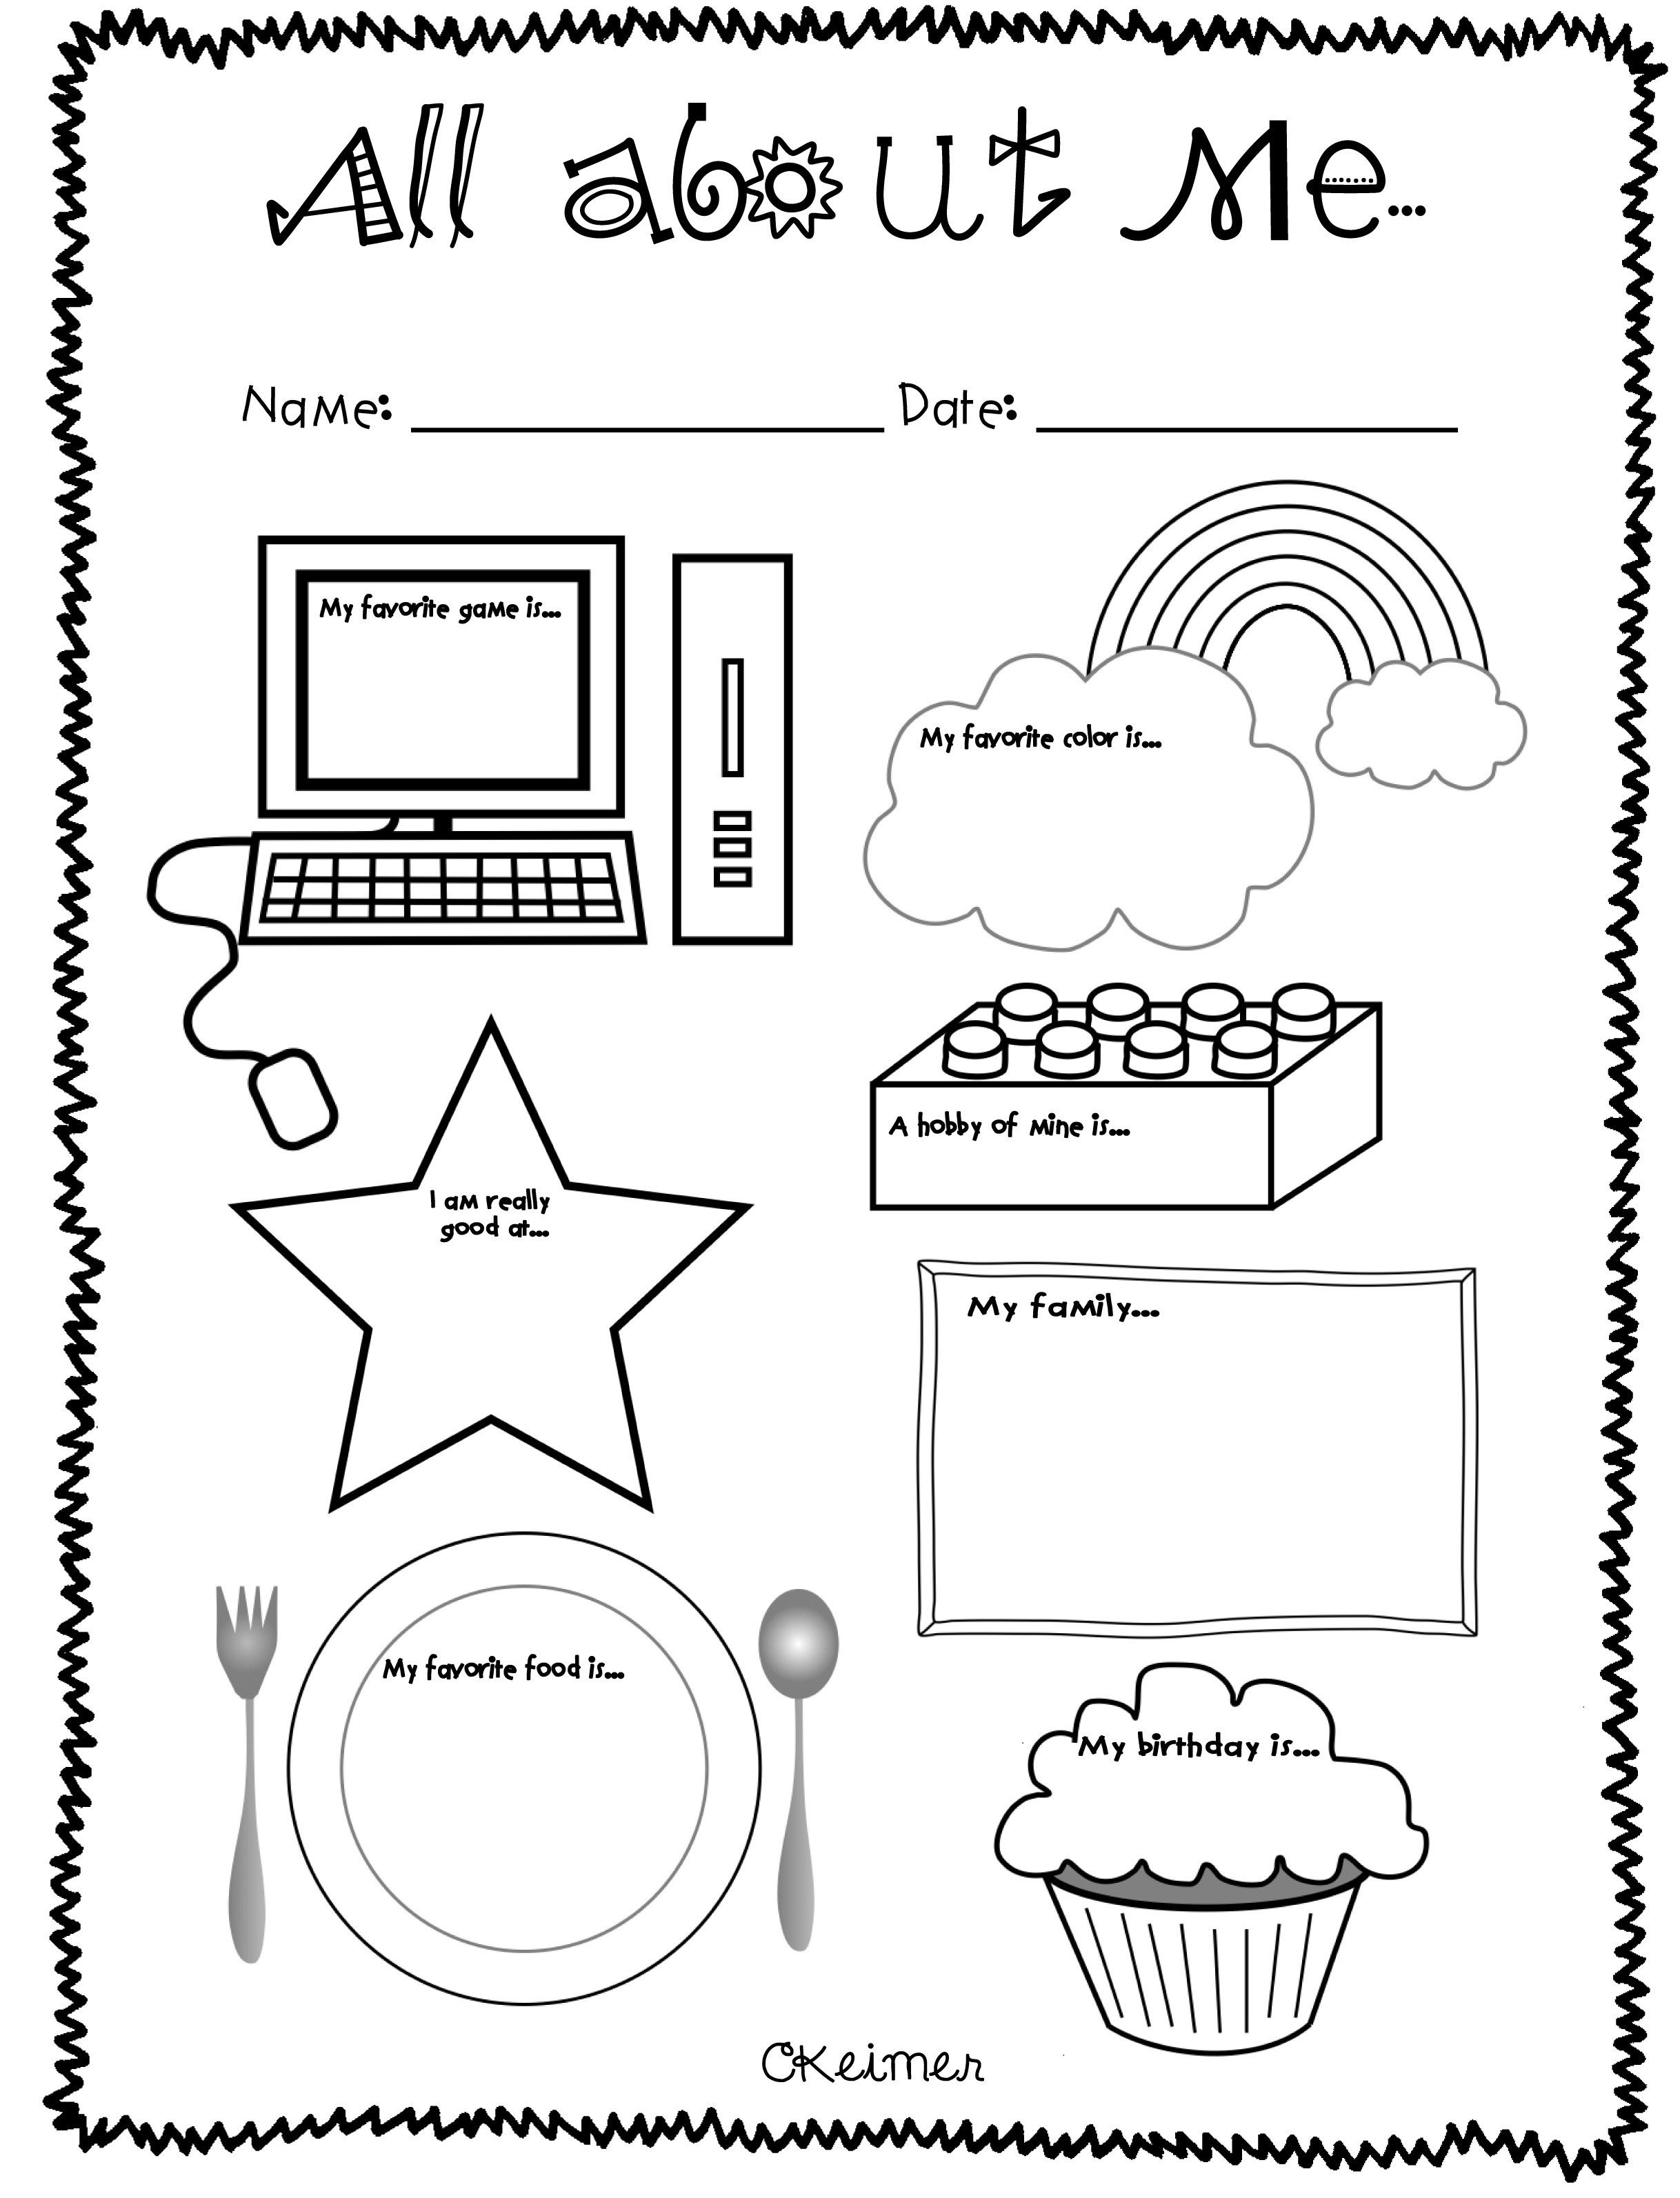 Worksheet All About Me Free Grass Fedjp Incredible Poster